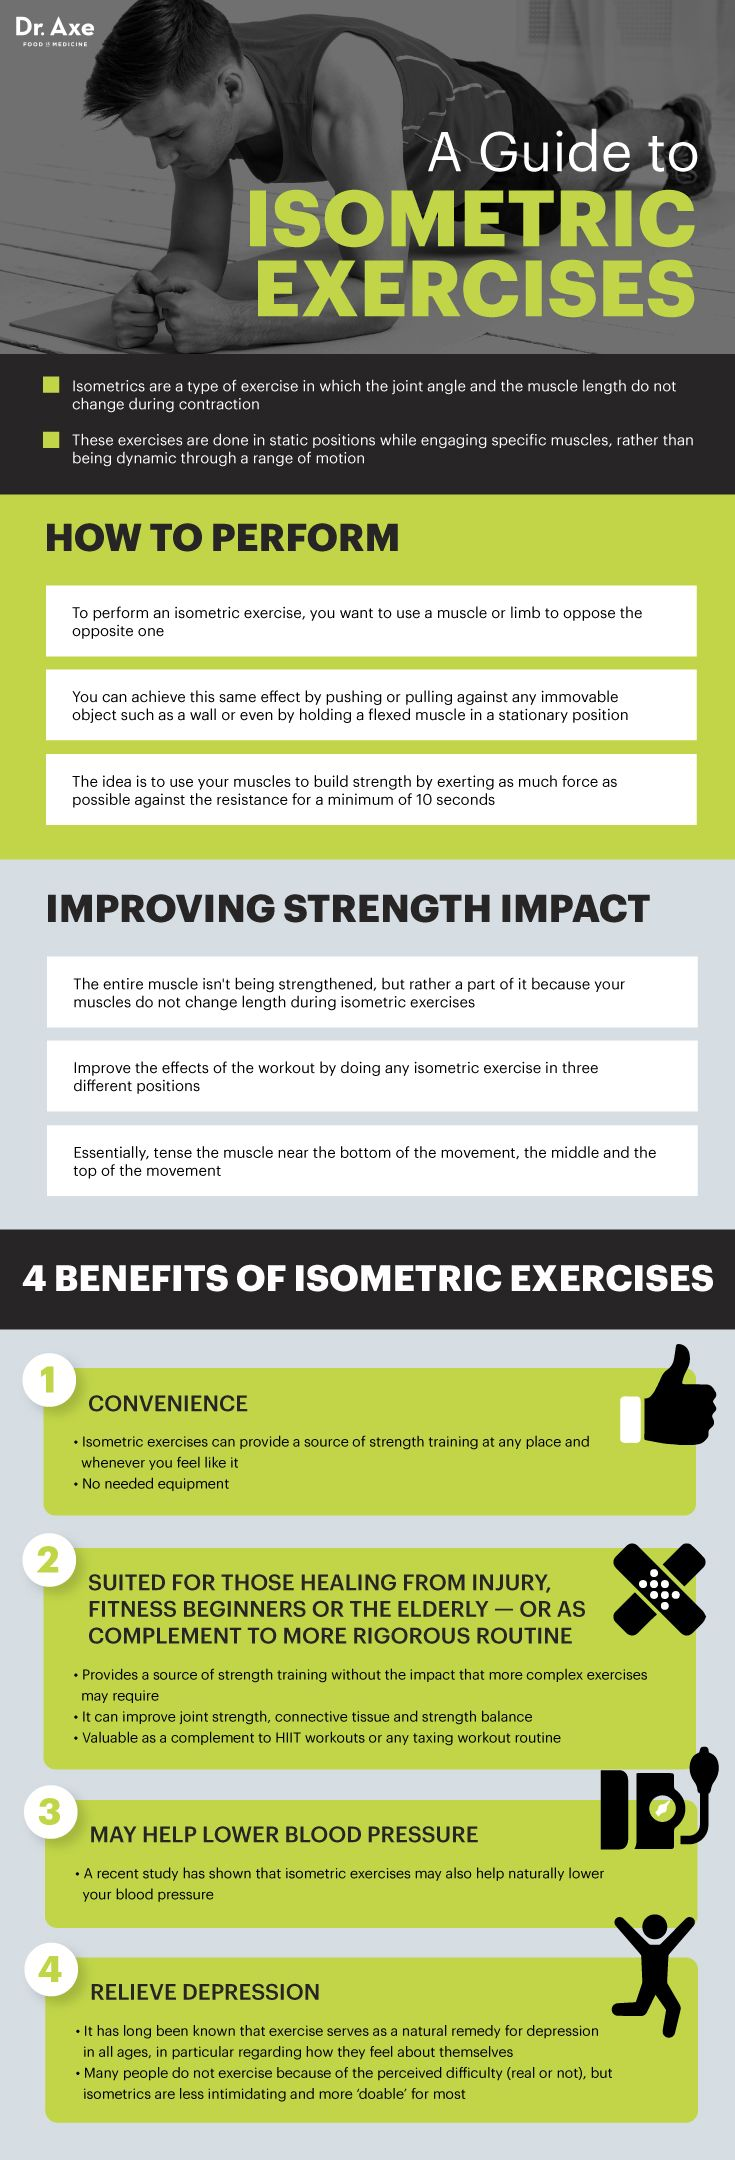 Why Isometric Exercises Belong in Your Exercise Routine - Dr. Axe